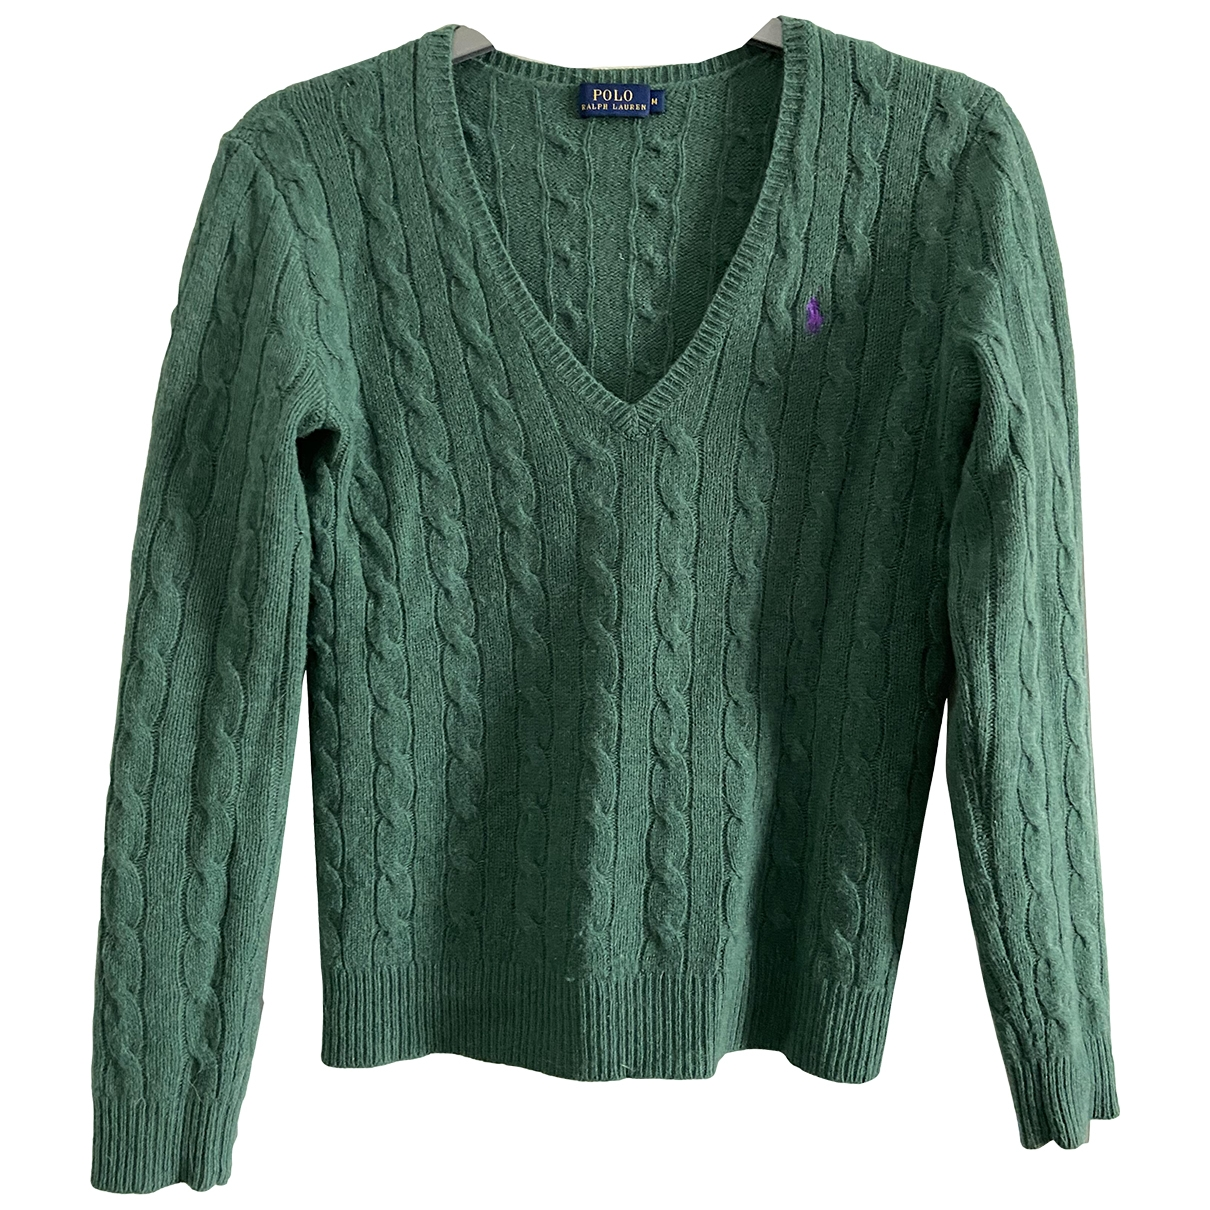 Polo Ralph Lauren \N Green Wool Knitwear for Women M International